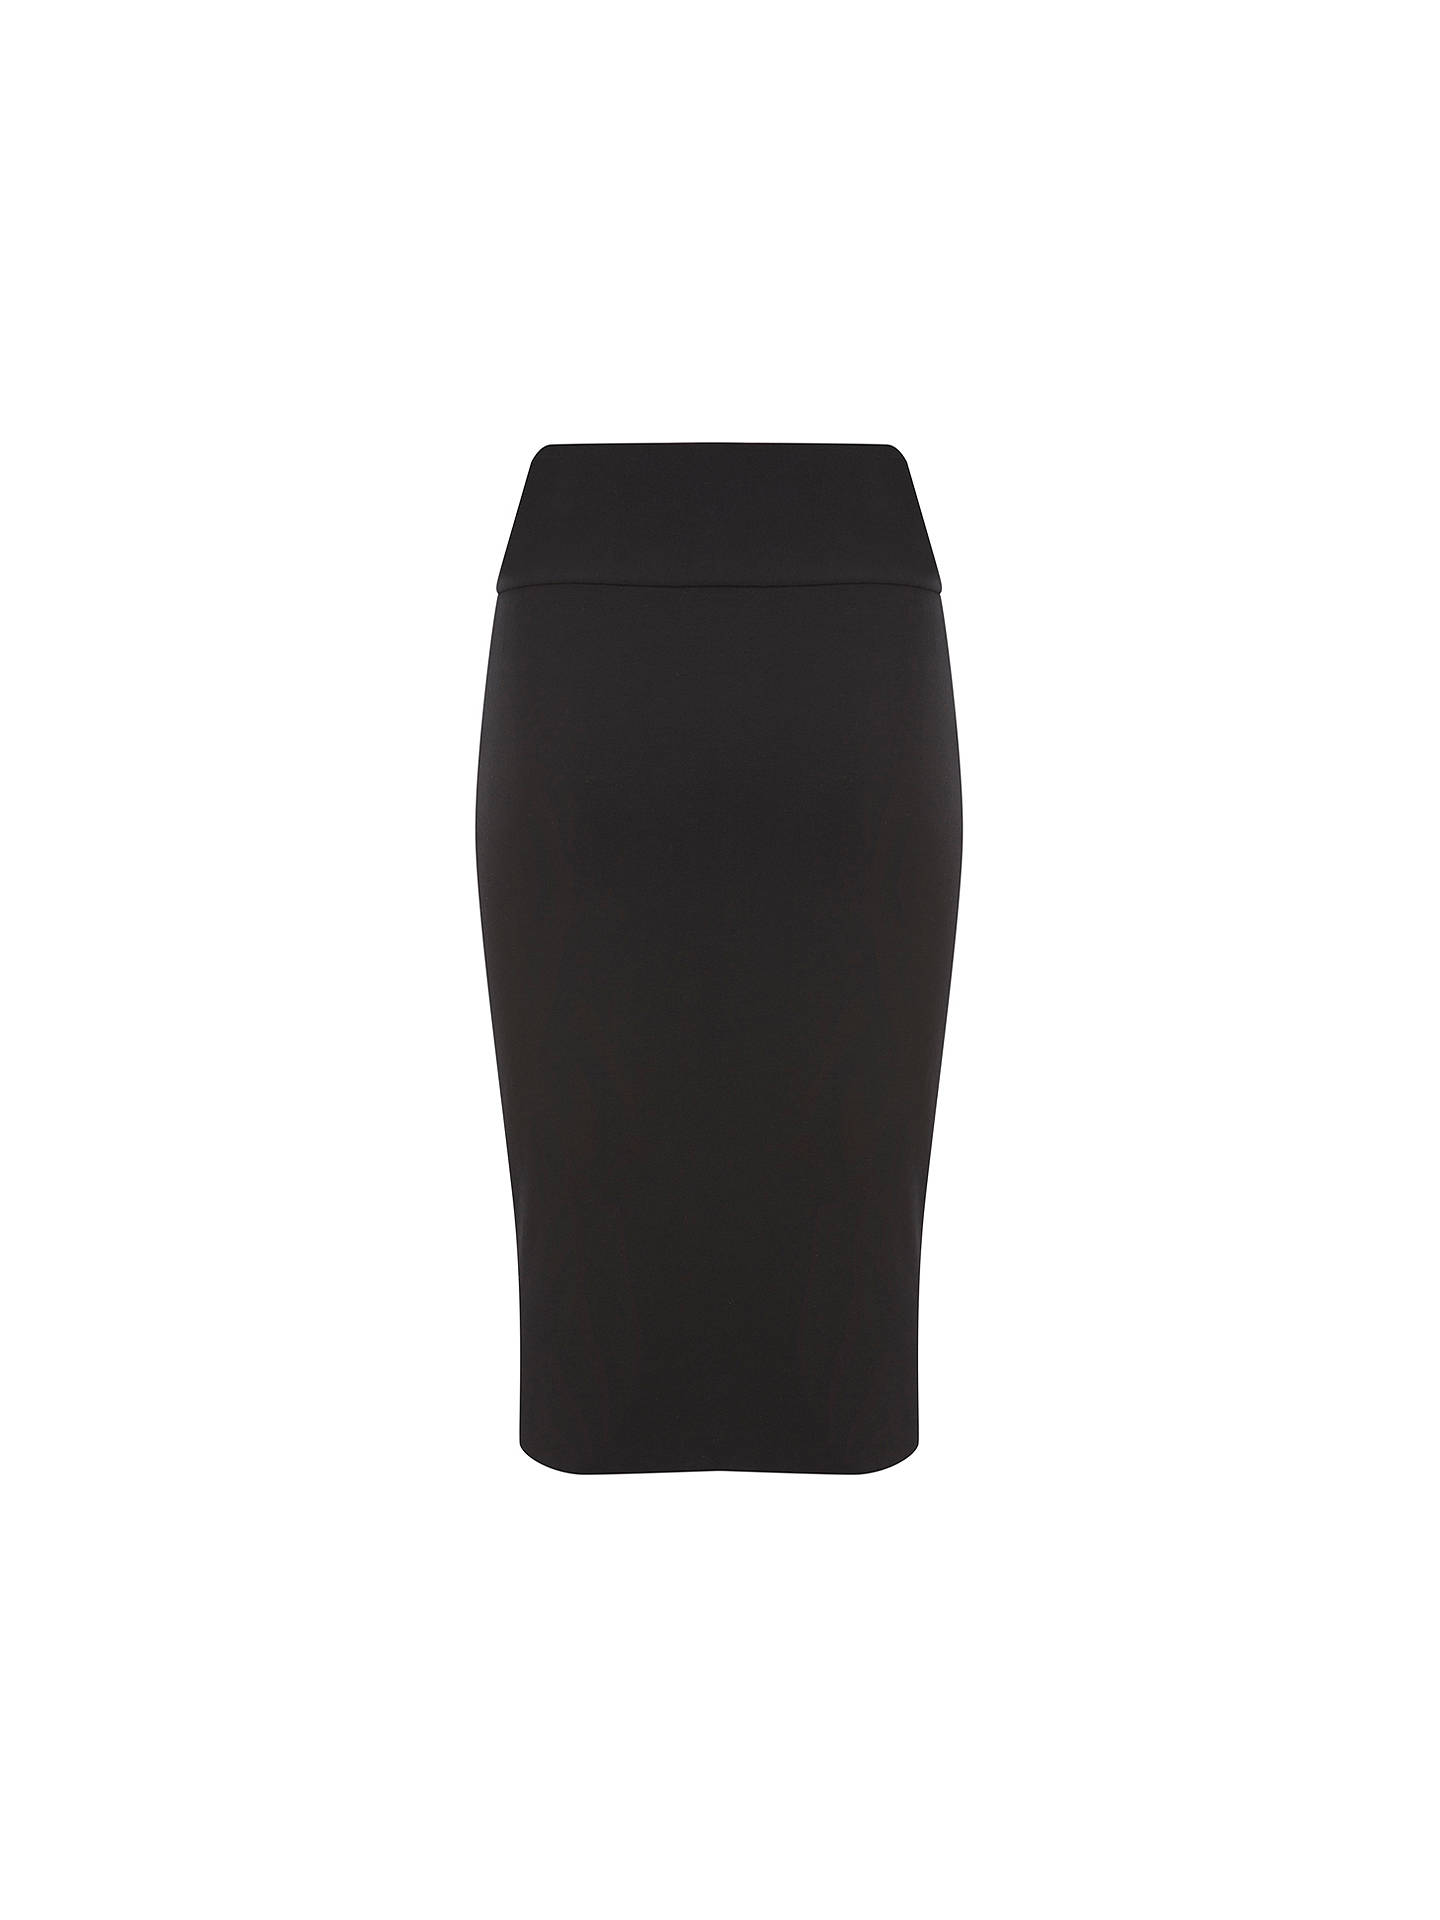 30192e7fd9 ... Buy Mint Velvet Jersey Midi Tube Skirt, Black, 6 Online at  johnlewis.com ...